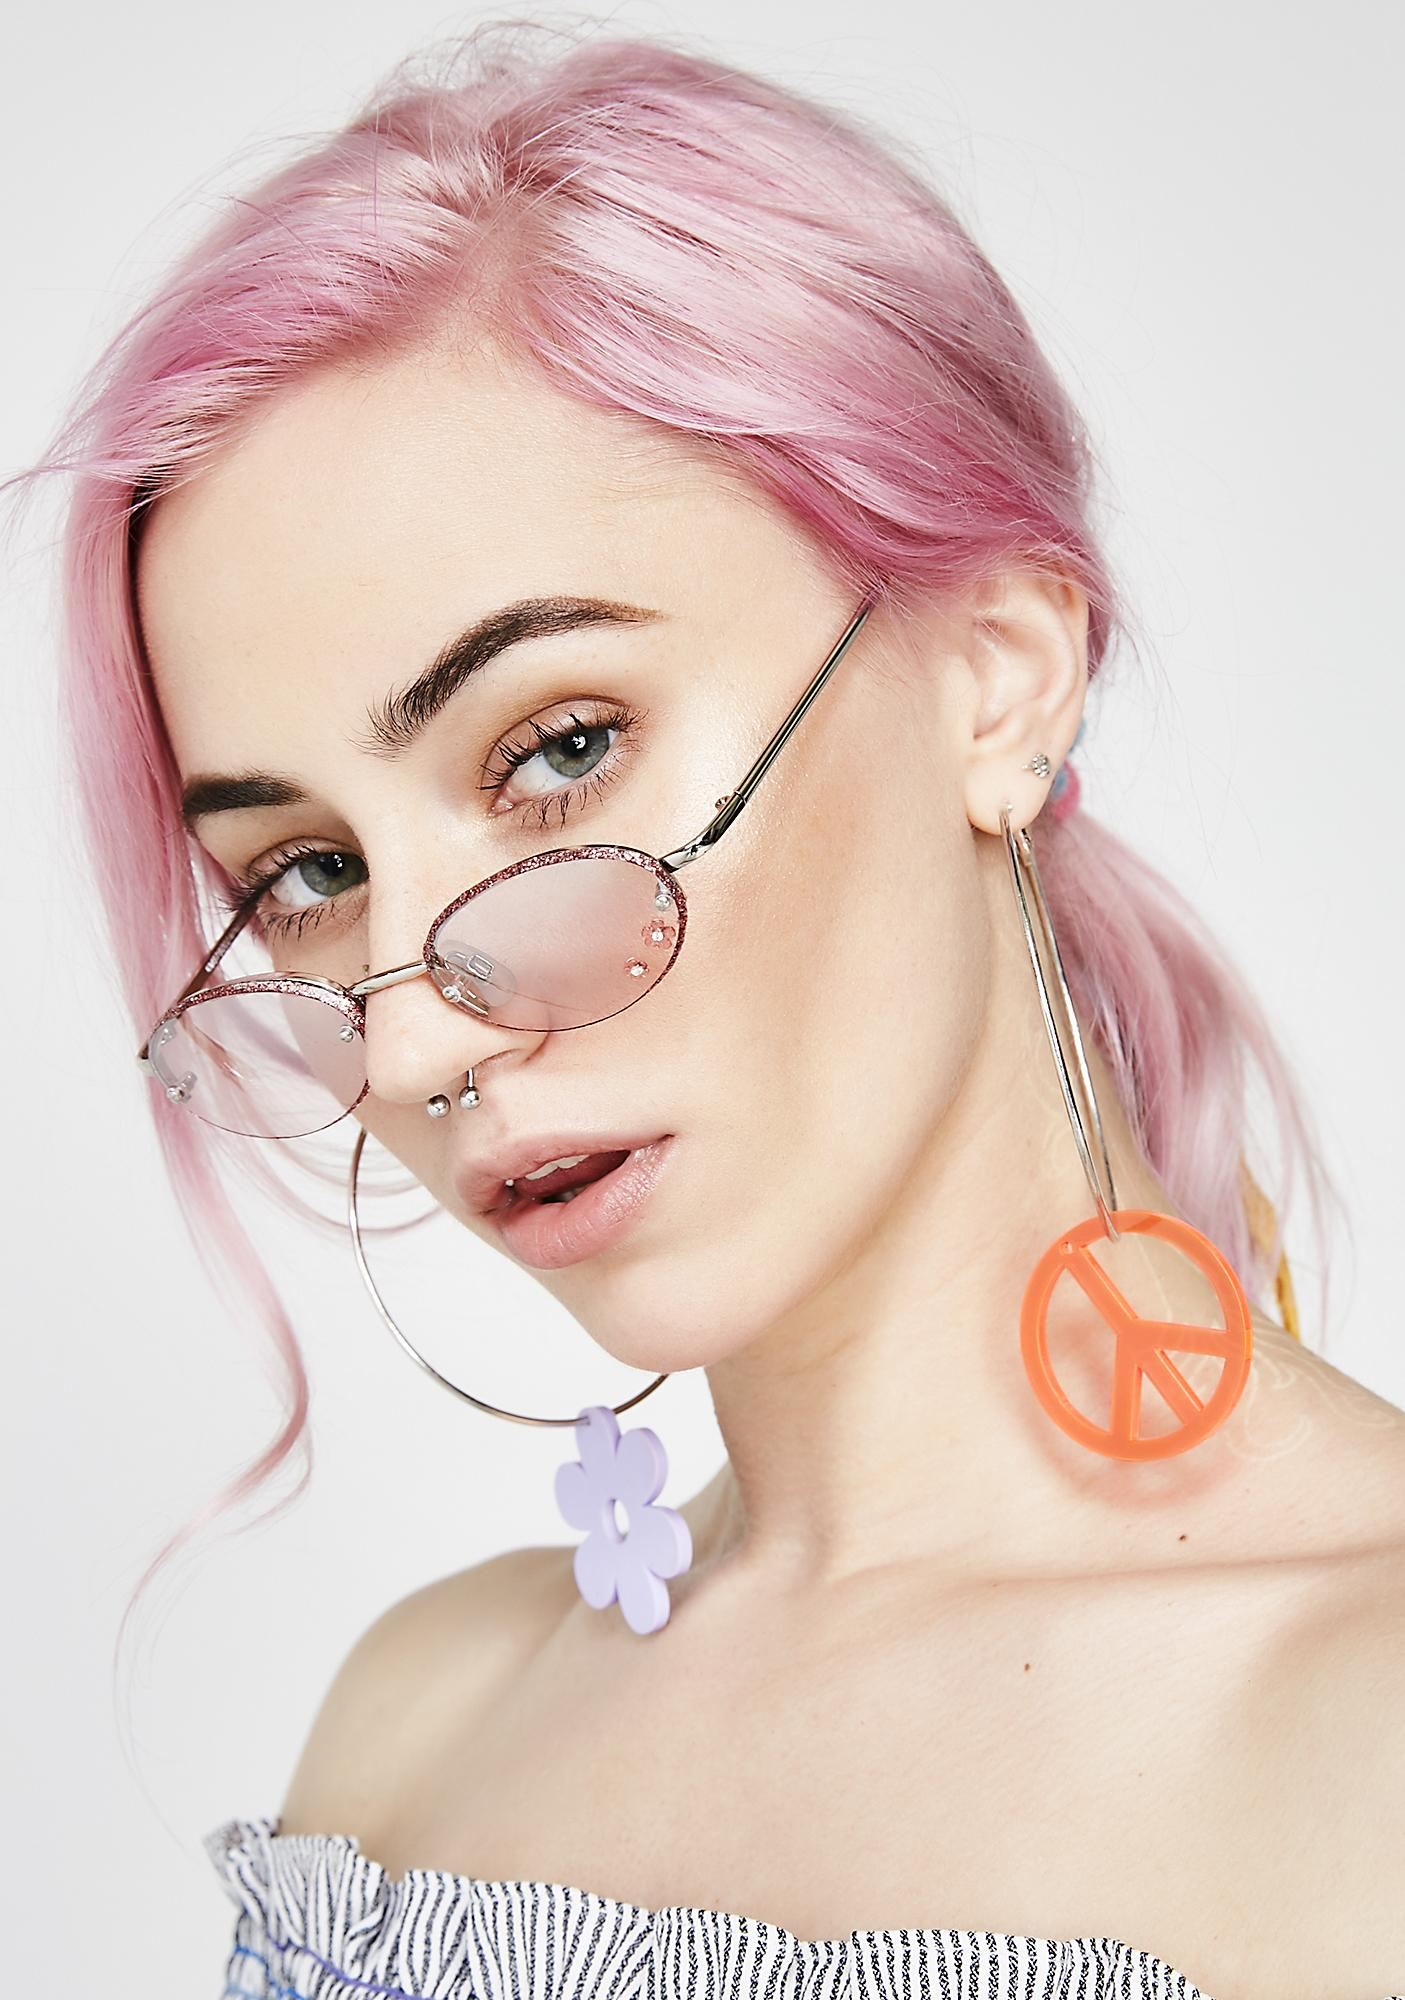 Just A Girl Flower Sunglasses